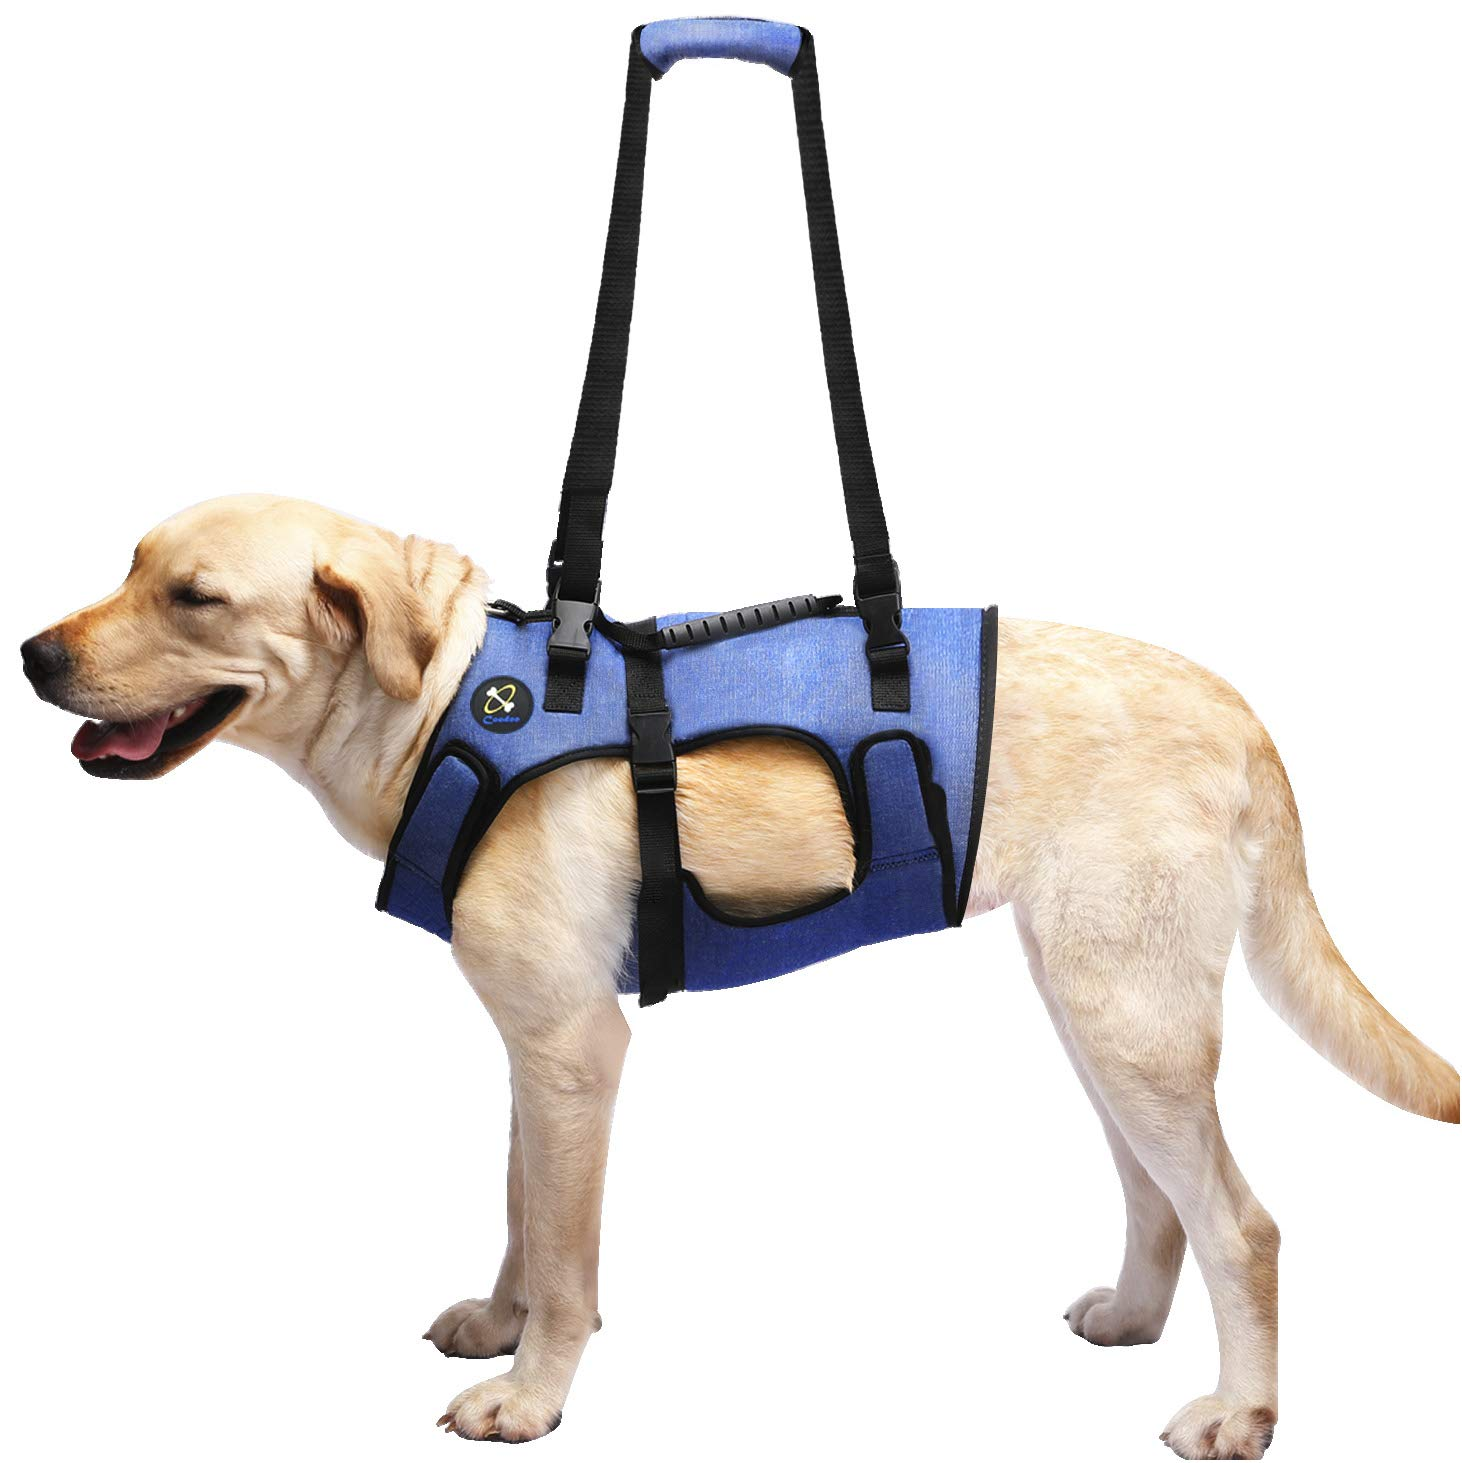 COODEO Dog Lift Harness, Support & Recovery Sling, Pet Rehabilitation Lifts Vest Adjustable Breathable Straps for Old, Disabled, Joint Injuries, Arthritis, Paralysis Dogs Walk (Large) by COODEO